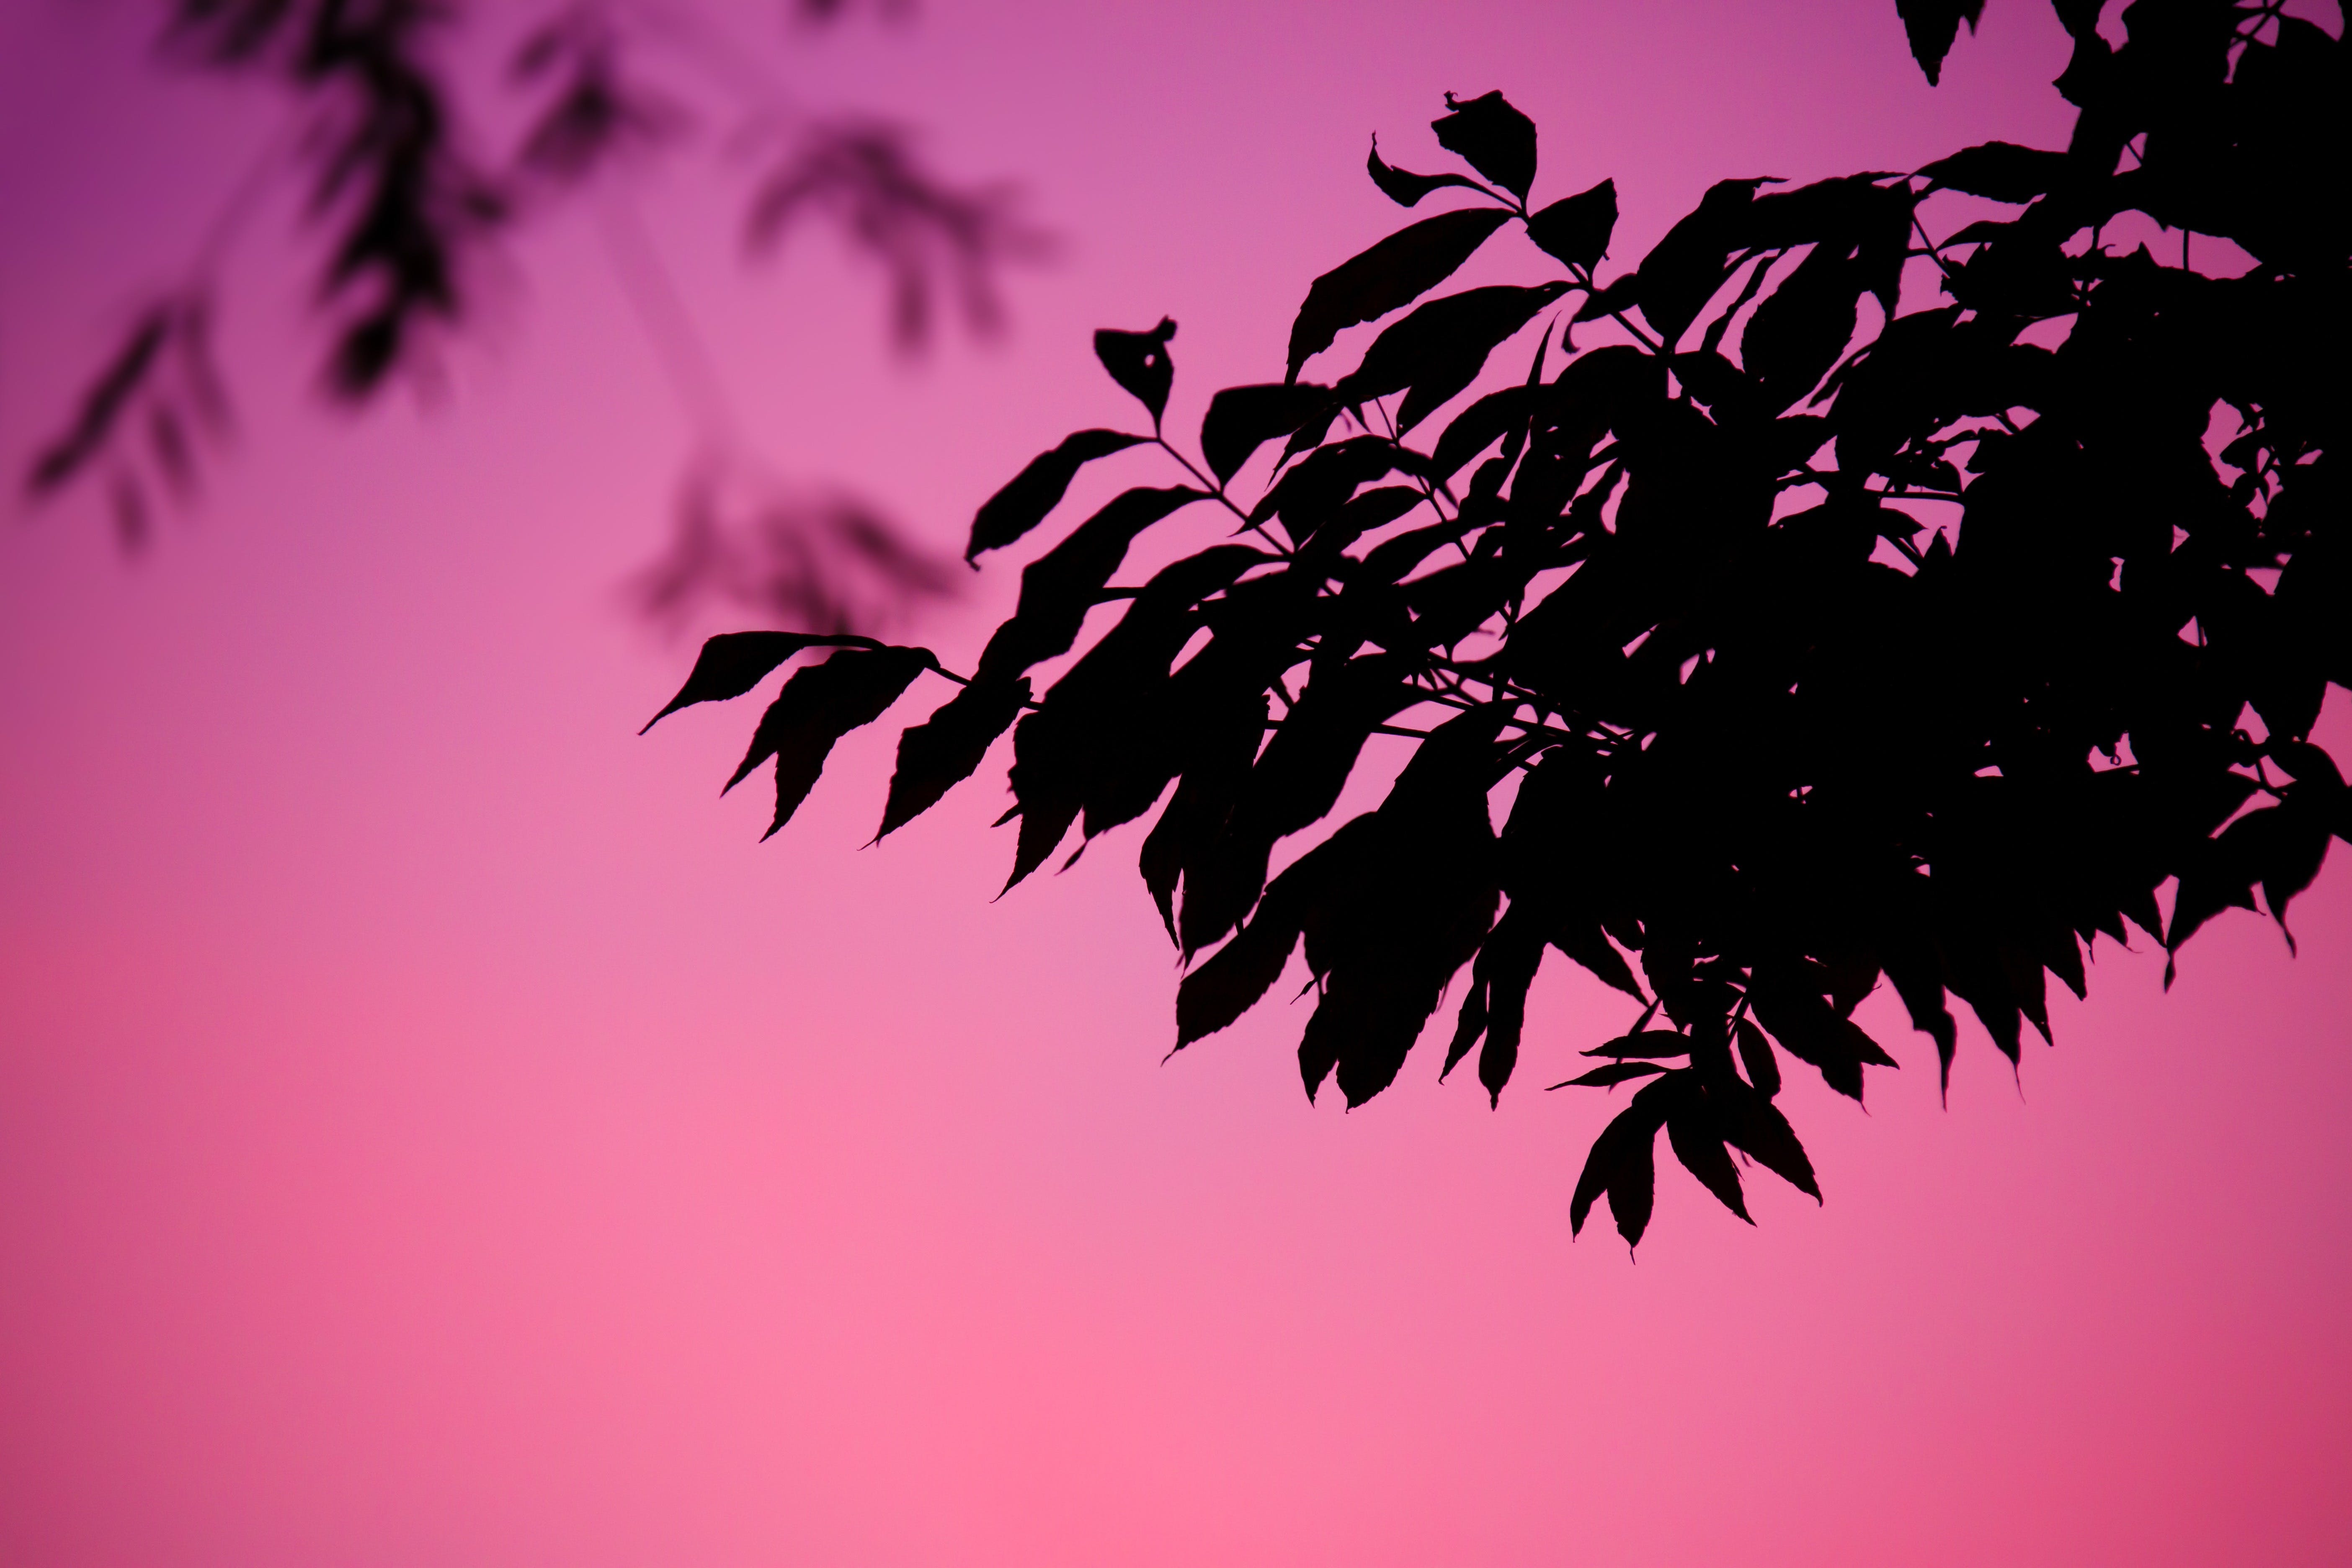 Silhouettes of Leaves during Dawn